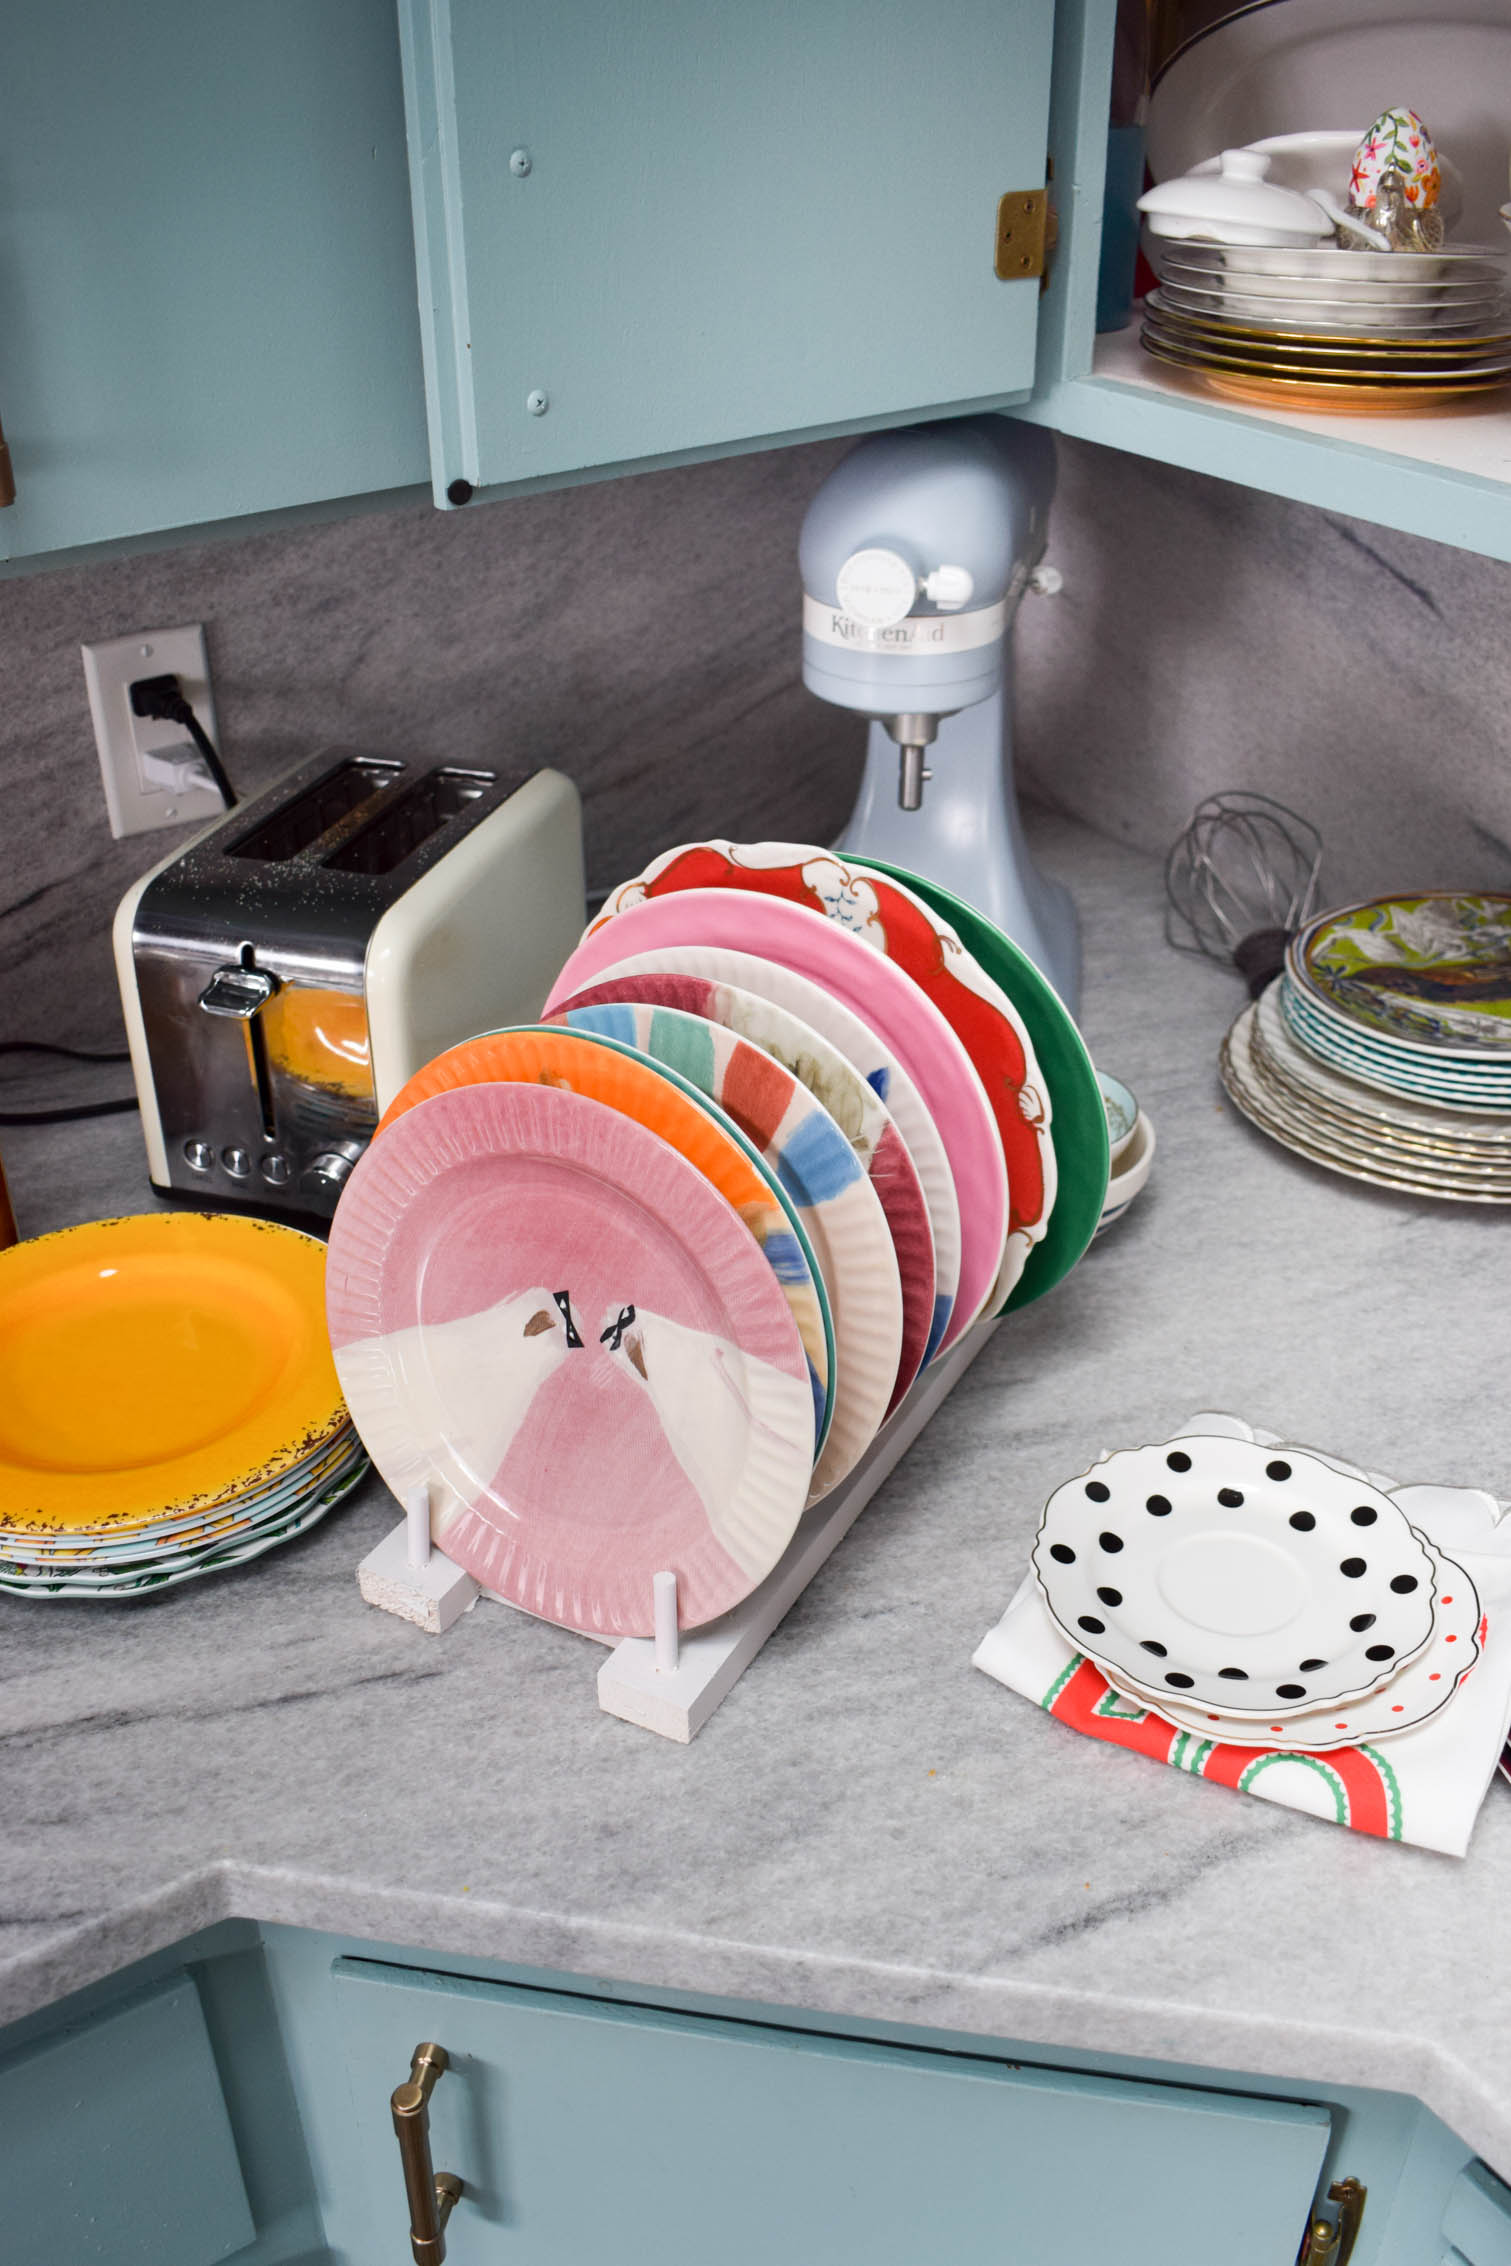 Make some DIY plate racks to organize all your kitchen dishes! You can make yours in a day using wood scraps